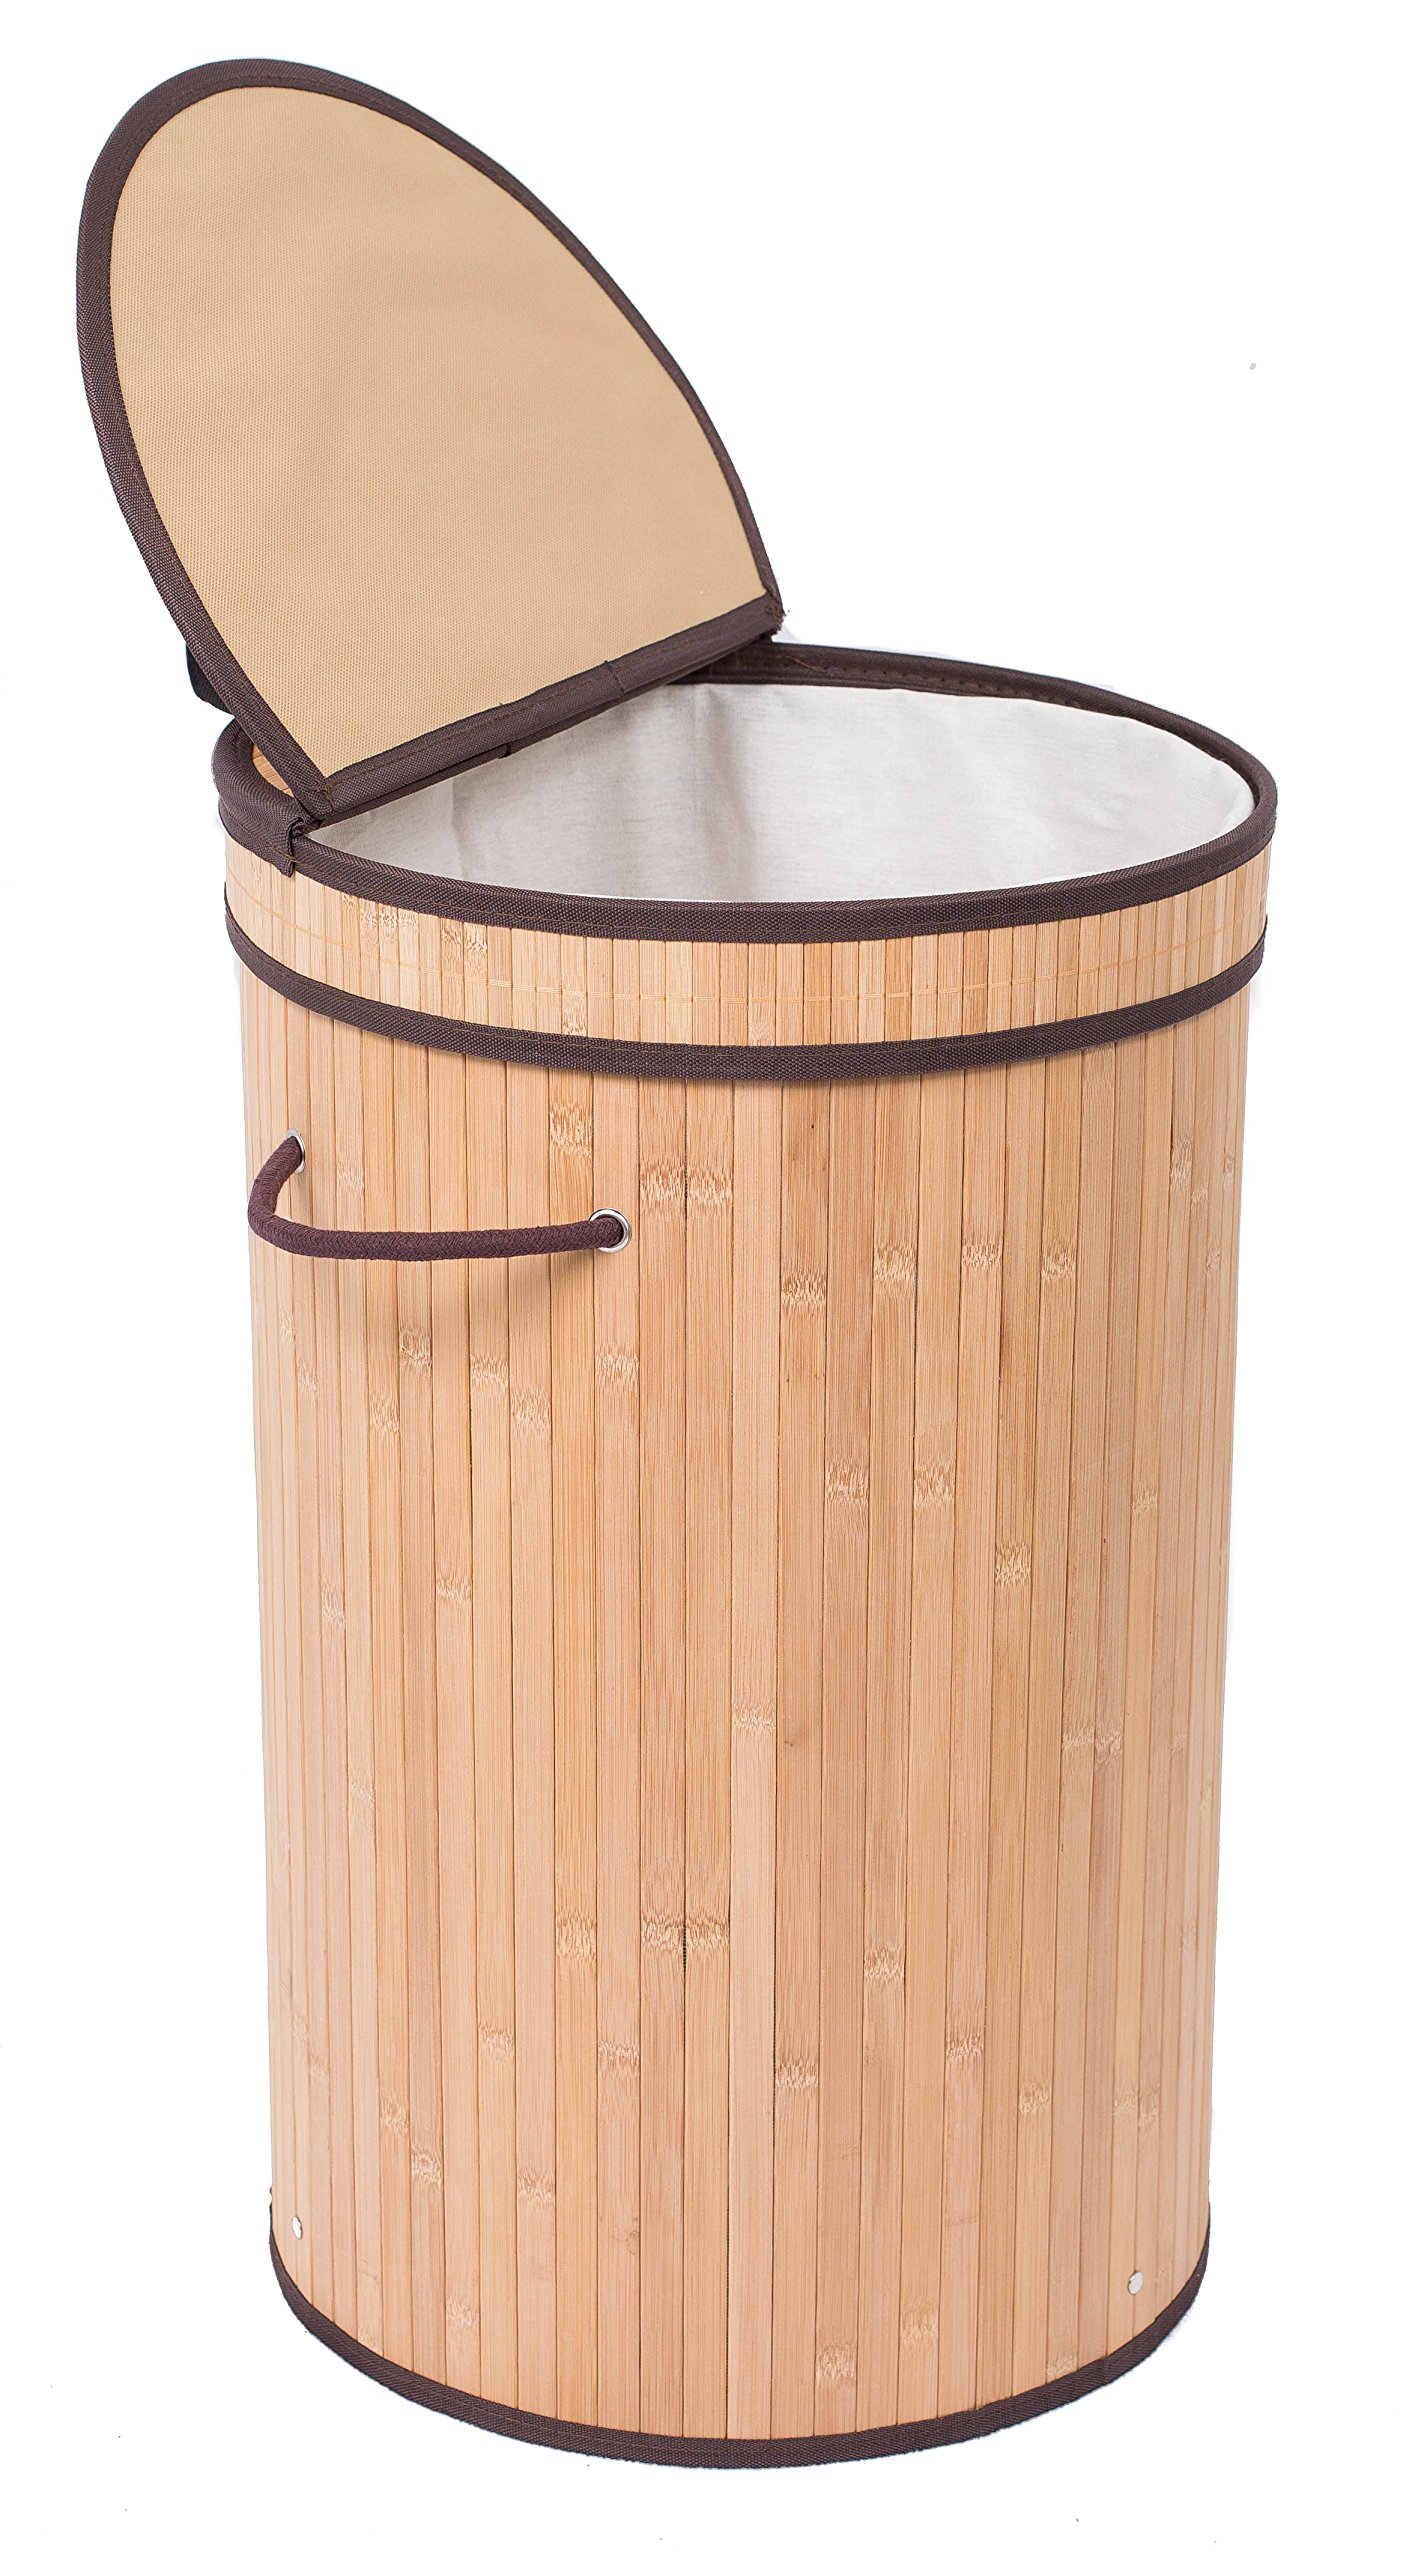 BirdRock Home Round Laundry Hamper with Lid and Cloth Liner | Bamboo | Natural | Easily Transport Laundry | Collapsible Hamper | String Handles